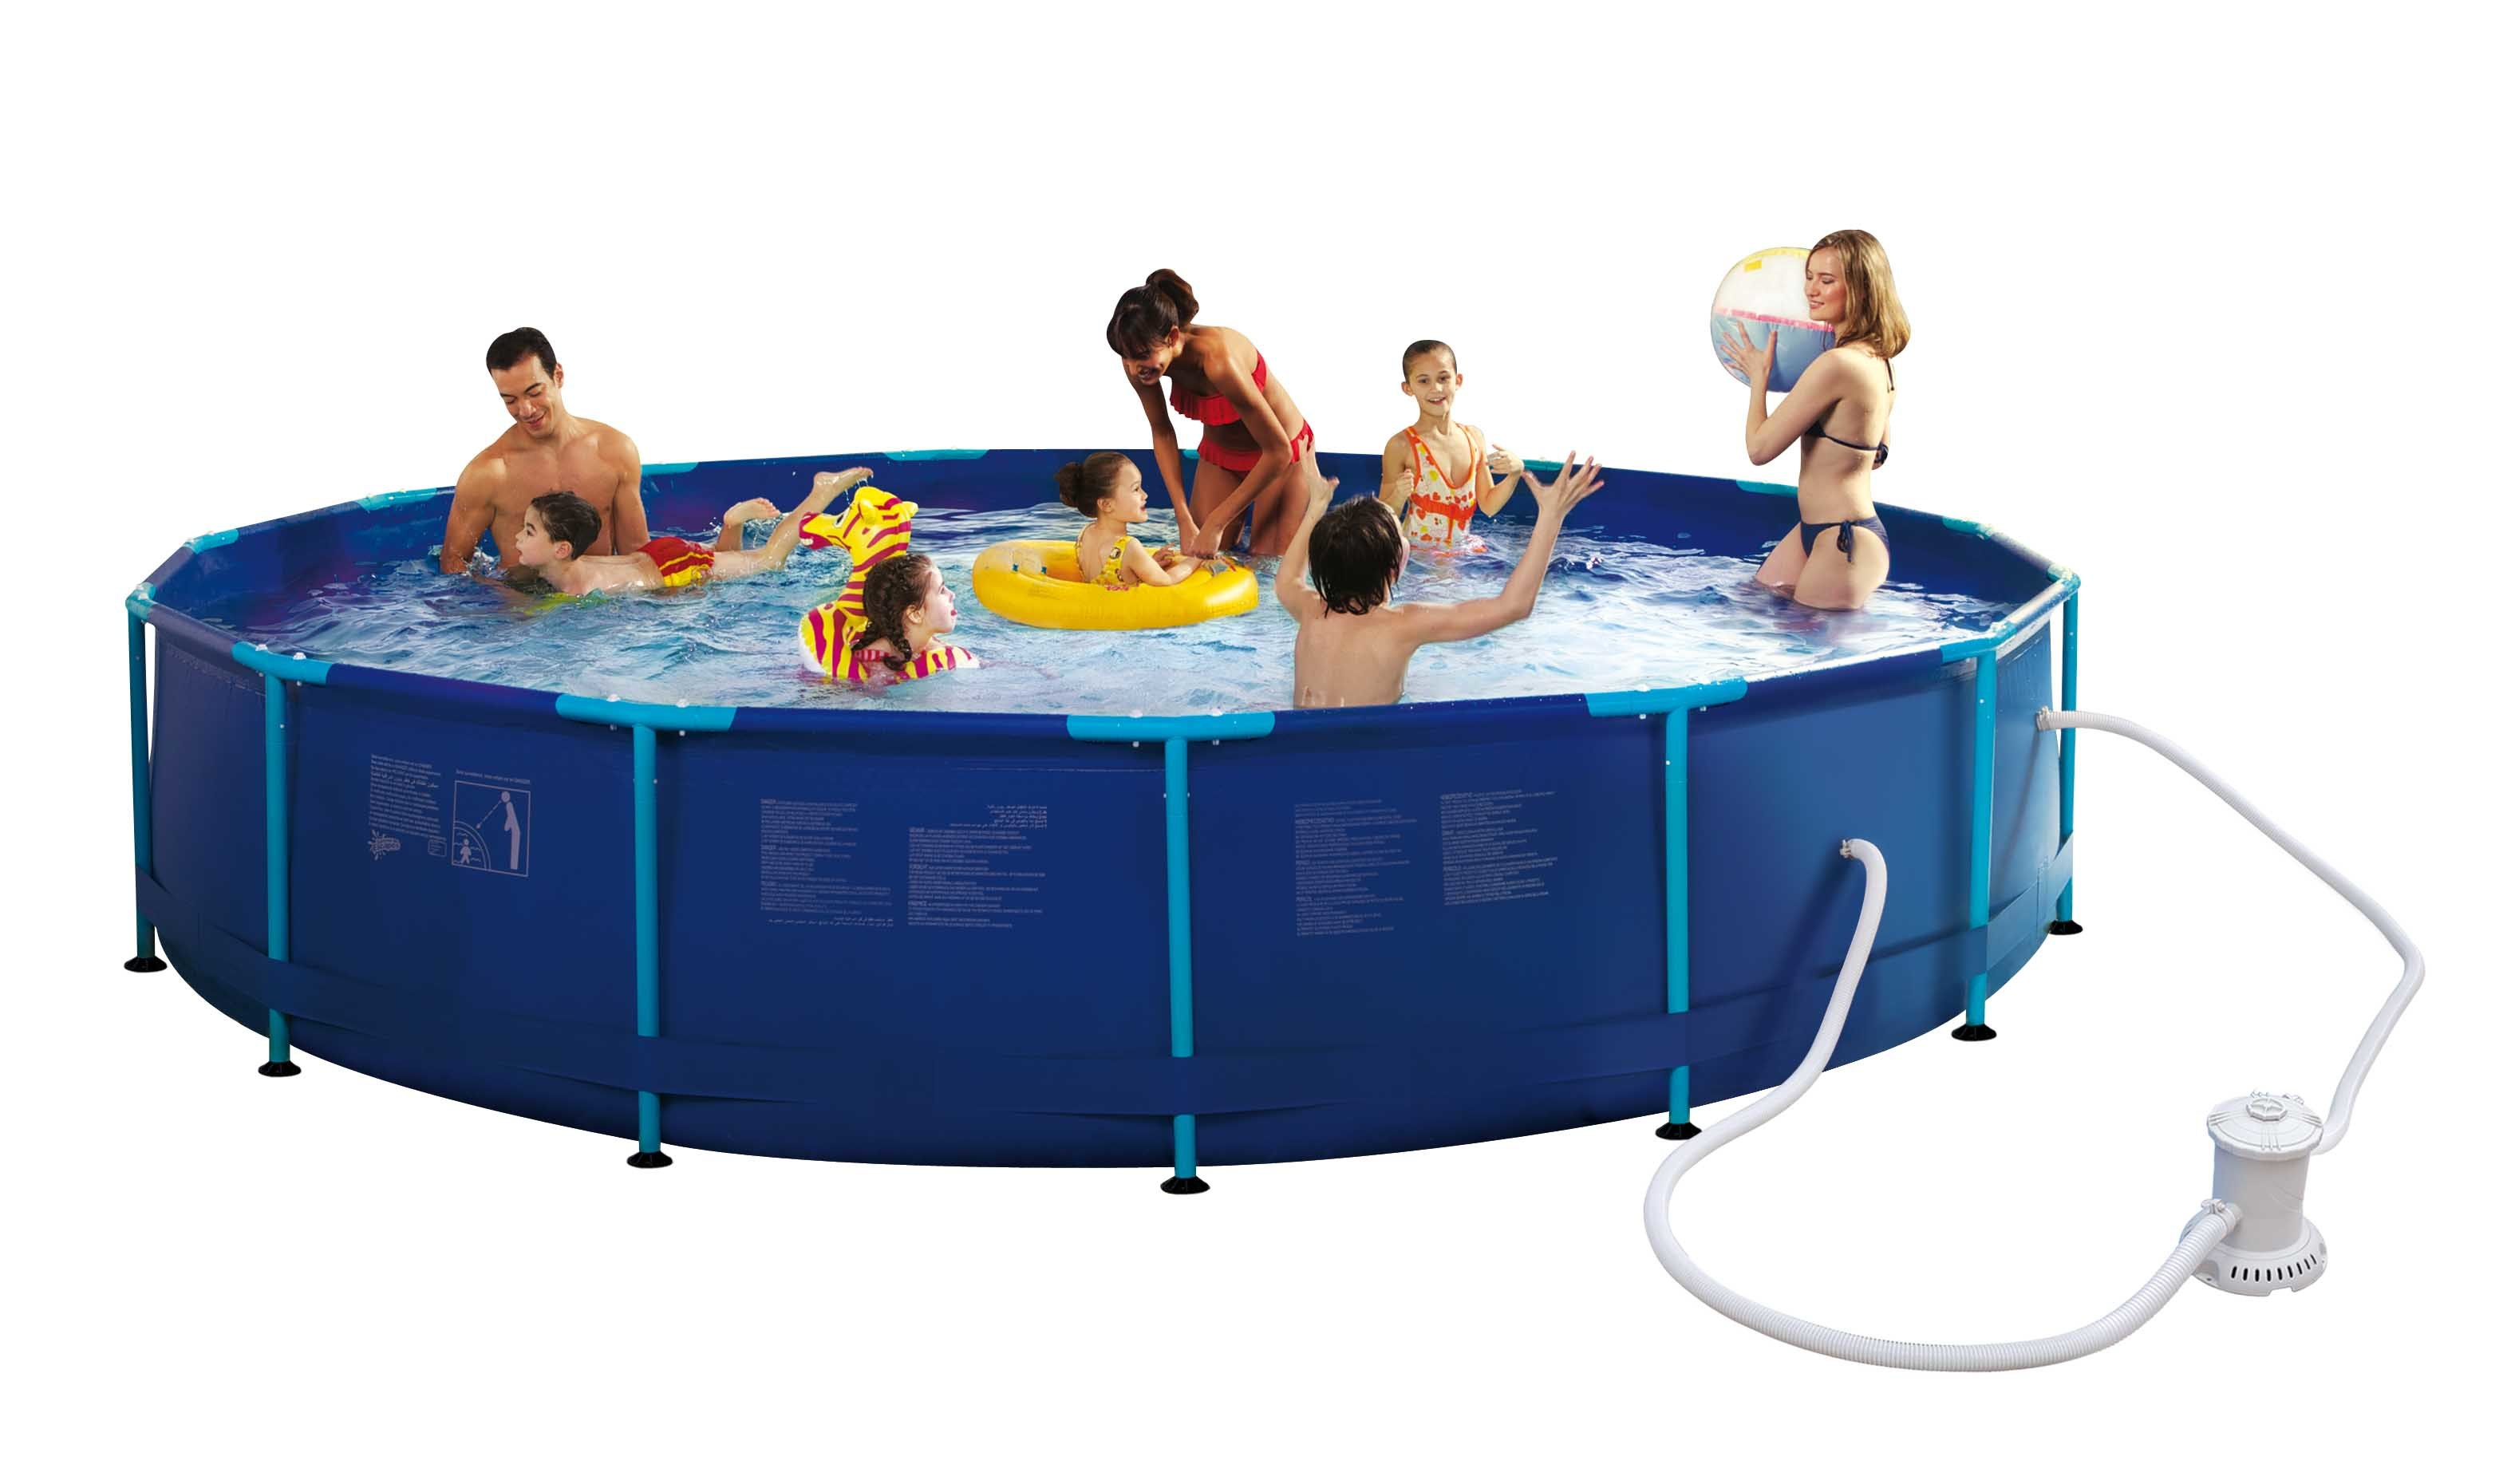 Carrefour piscine tubulaire ronde hawai 457 x h 83 for Carrefour piscine tubulaire